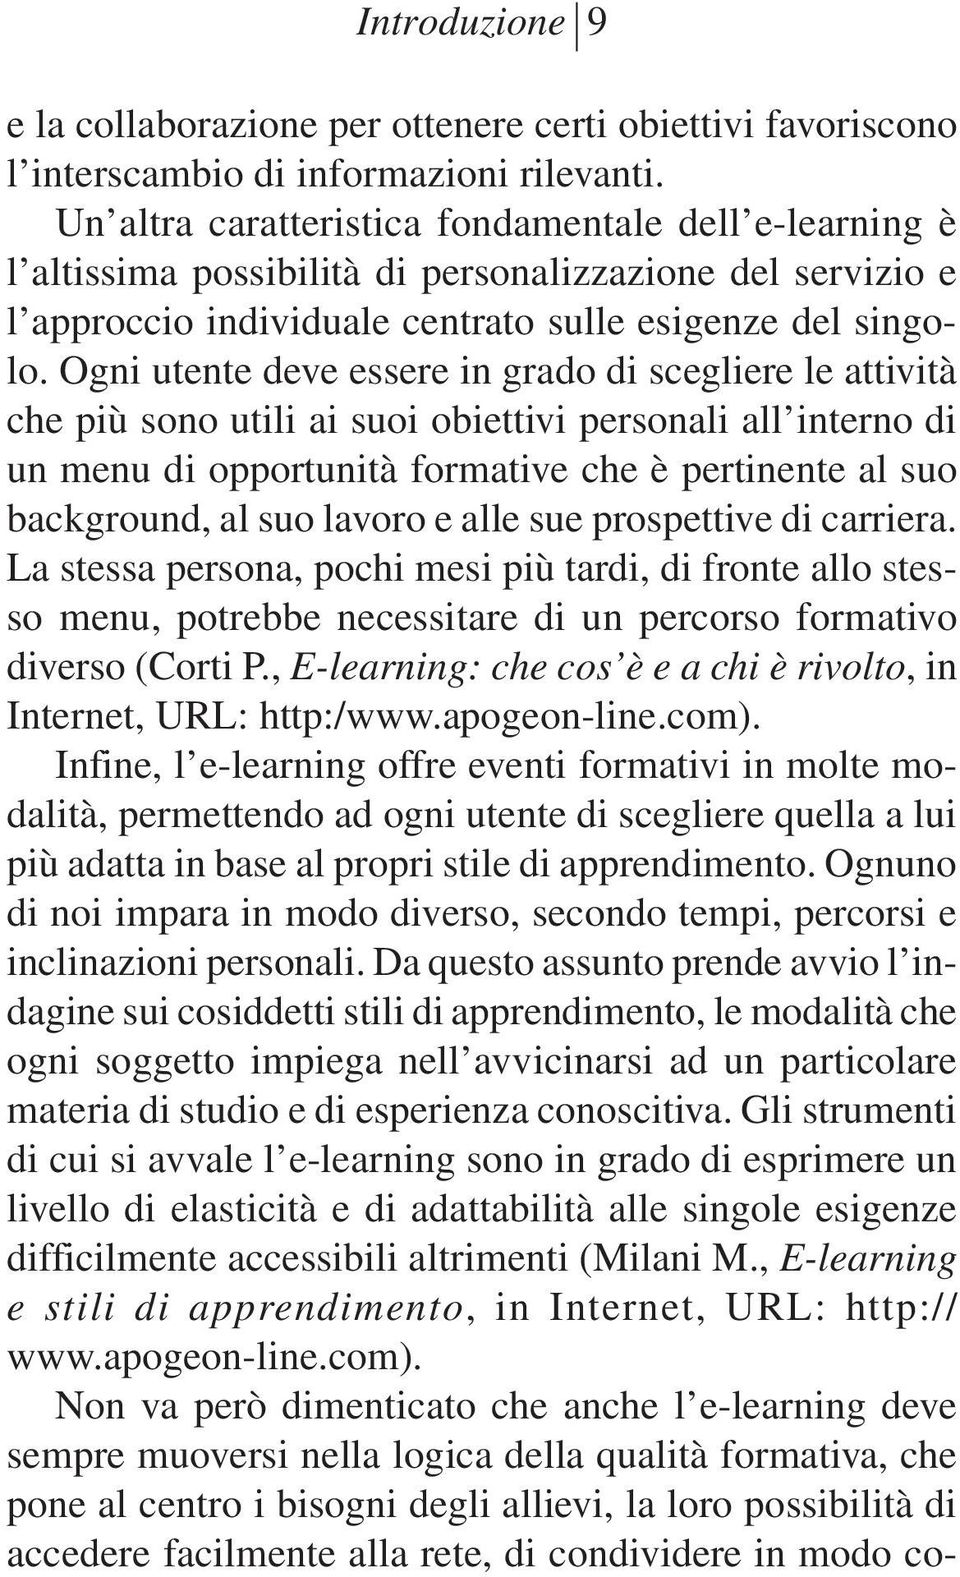 Ogni utente deve essere in grado di scegliere le attività che più sono utili ai suoi obiettivi personali all interno di un menu di opportunità formative che è pertinente al suo background, al suo